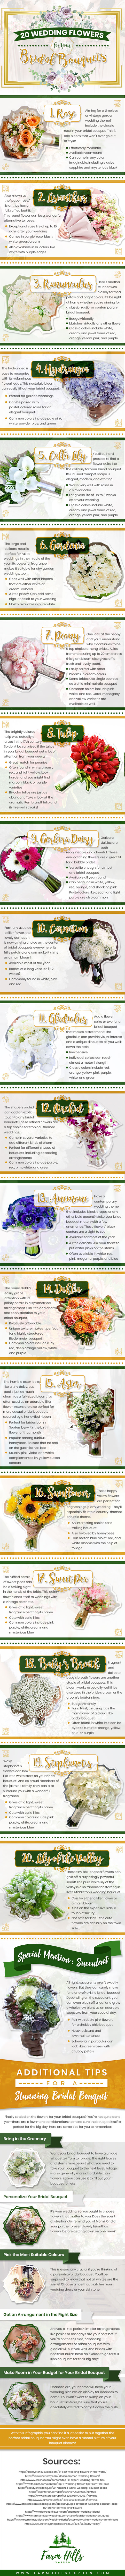 Wedding Flowers for the Best Bridal Bouquets